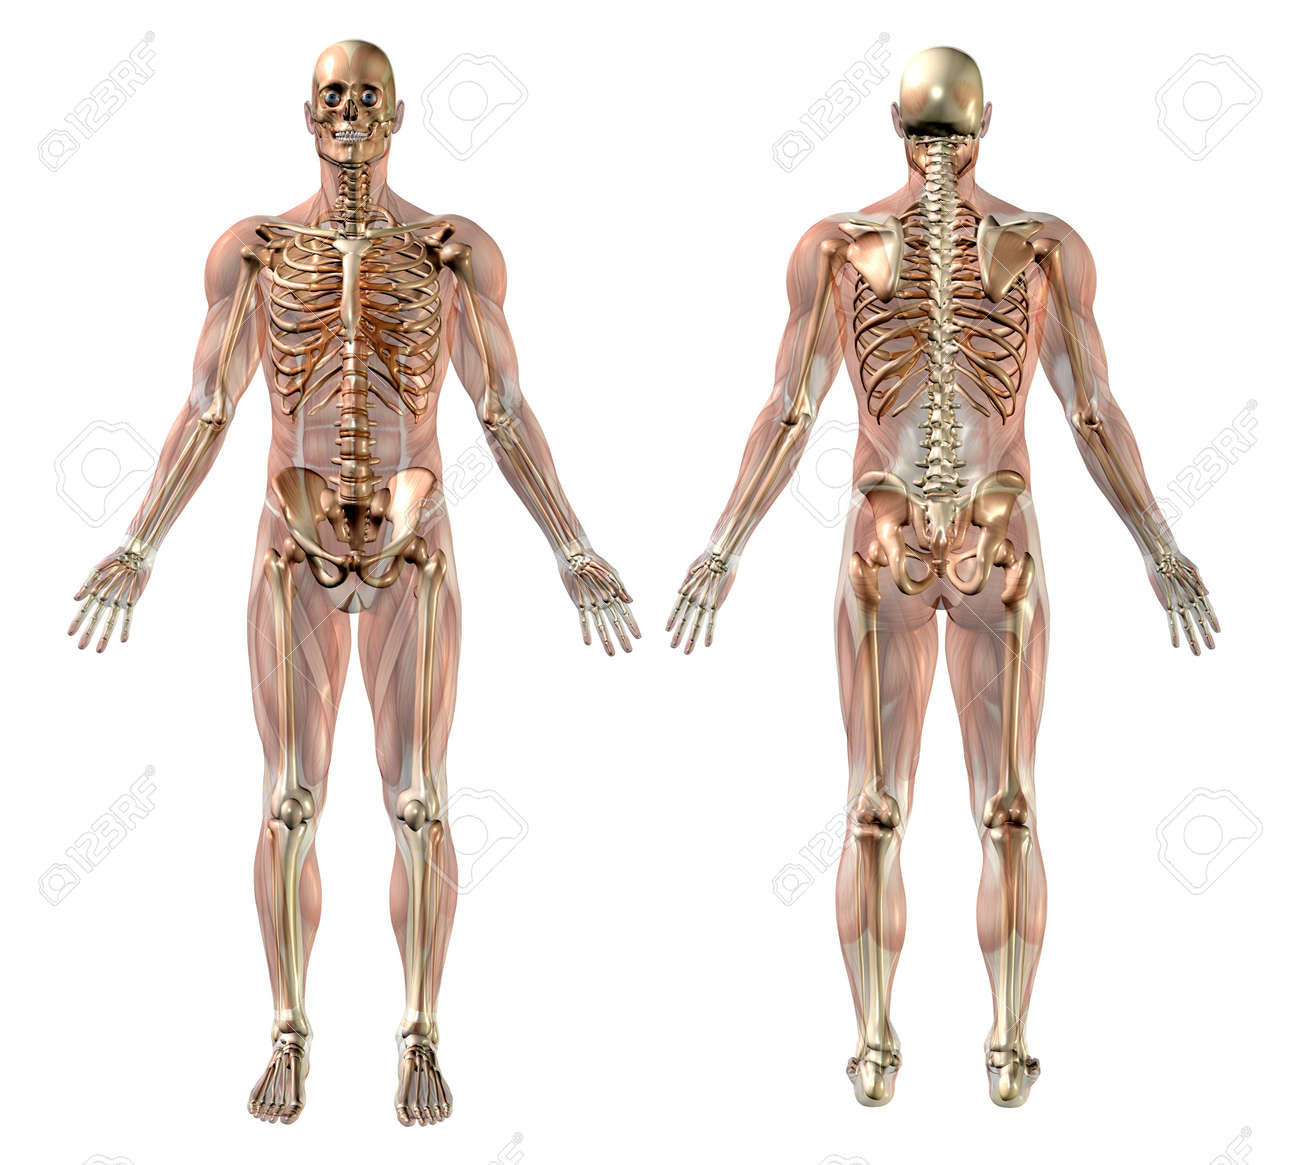 muscle structure stock photos images. royalty free muscle, Muscles